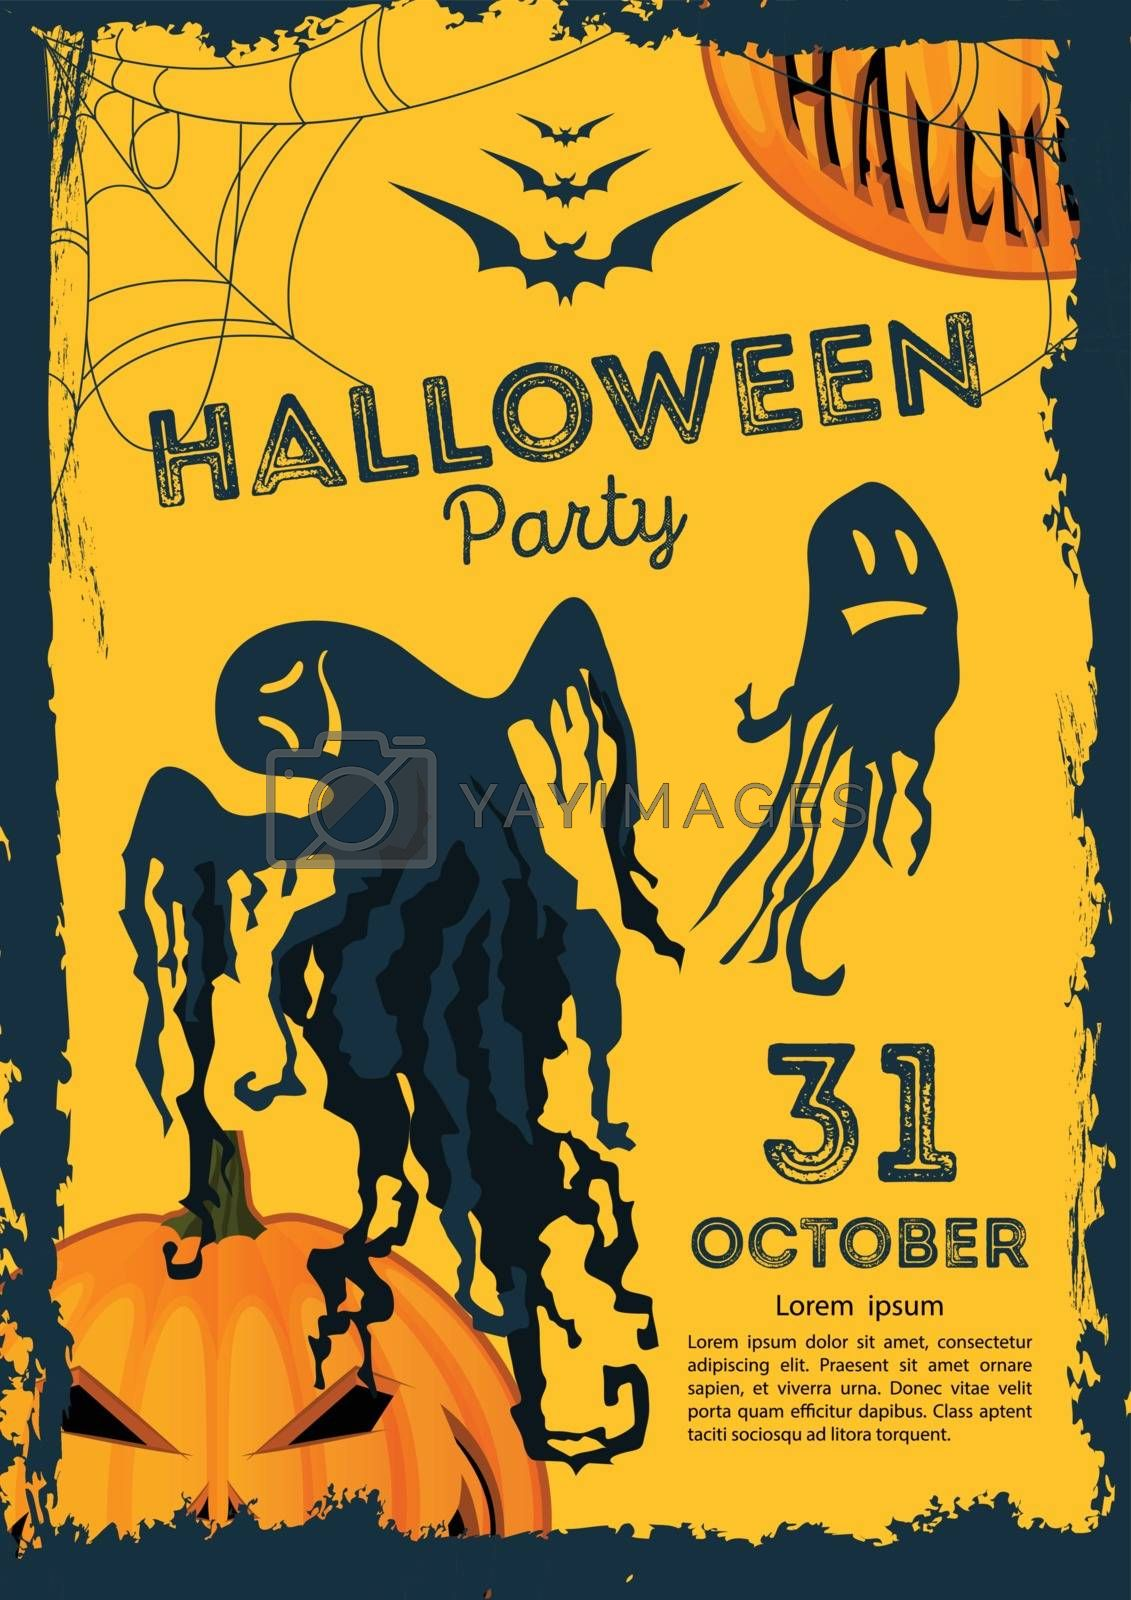 Vector illustration. Halloween poster on a yellow background with ghosts and Jack Lantern. Halloween party.